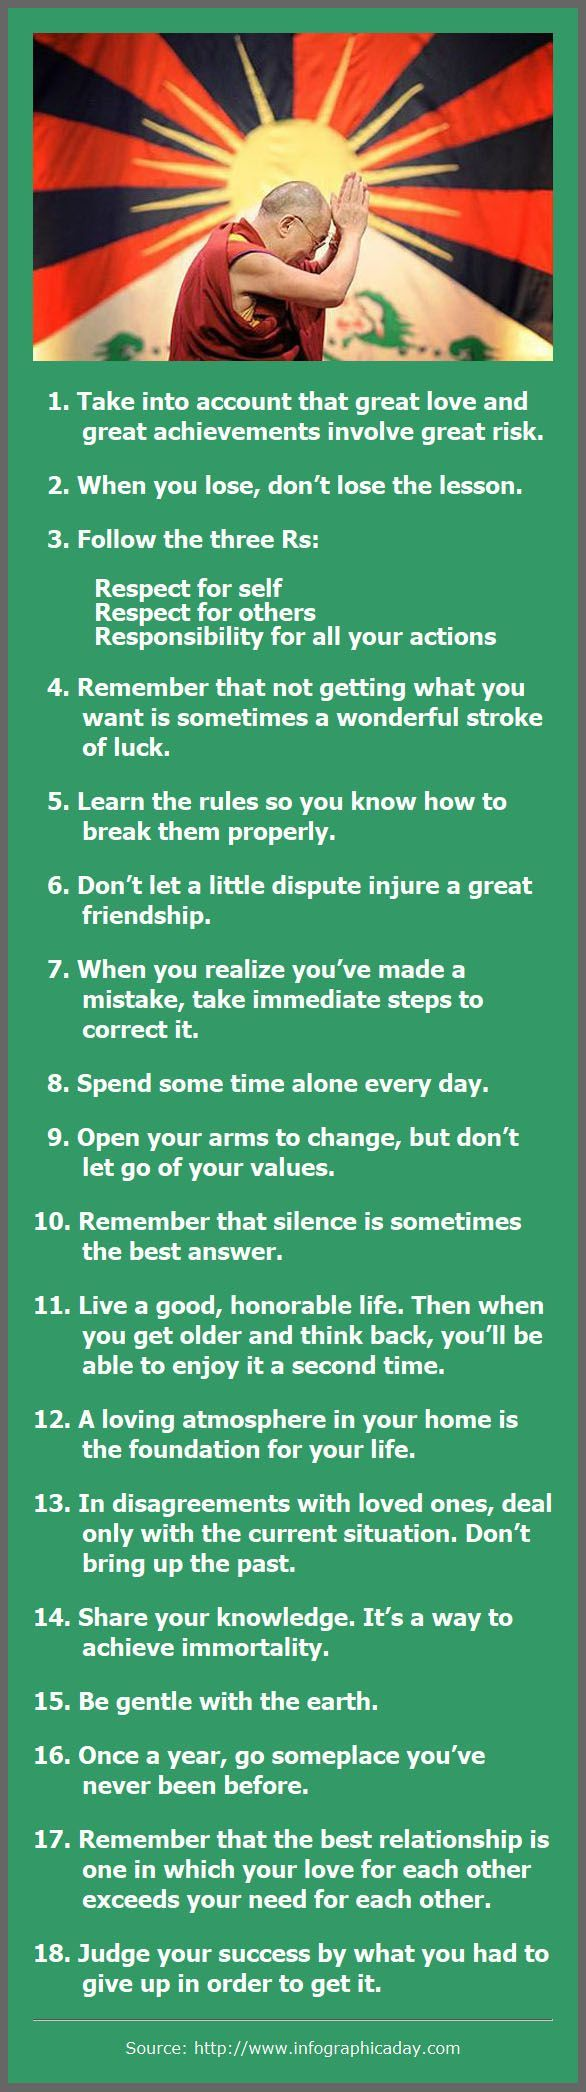 Dalai Lama: 18 Rules of Living